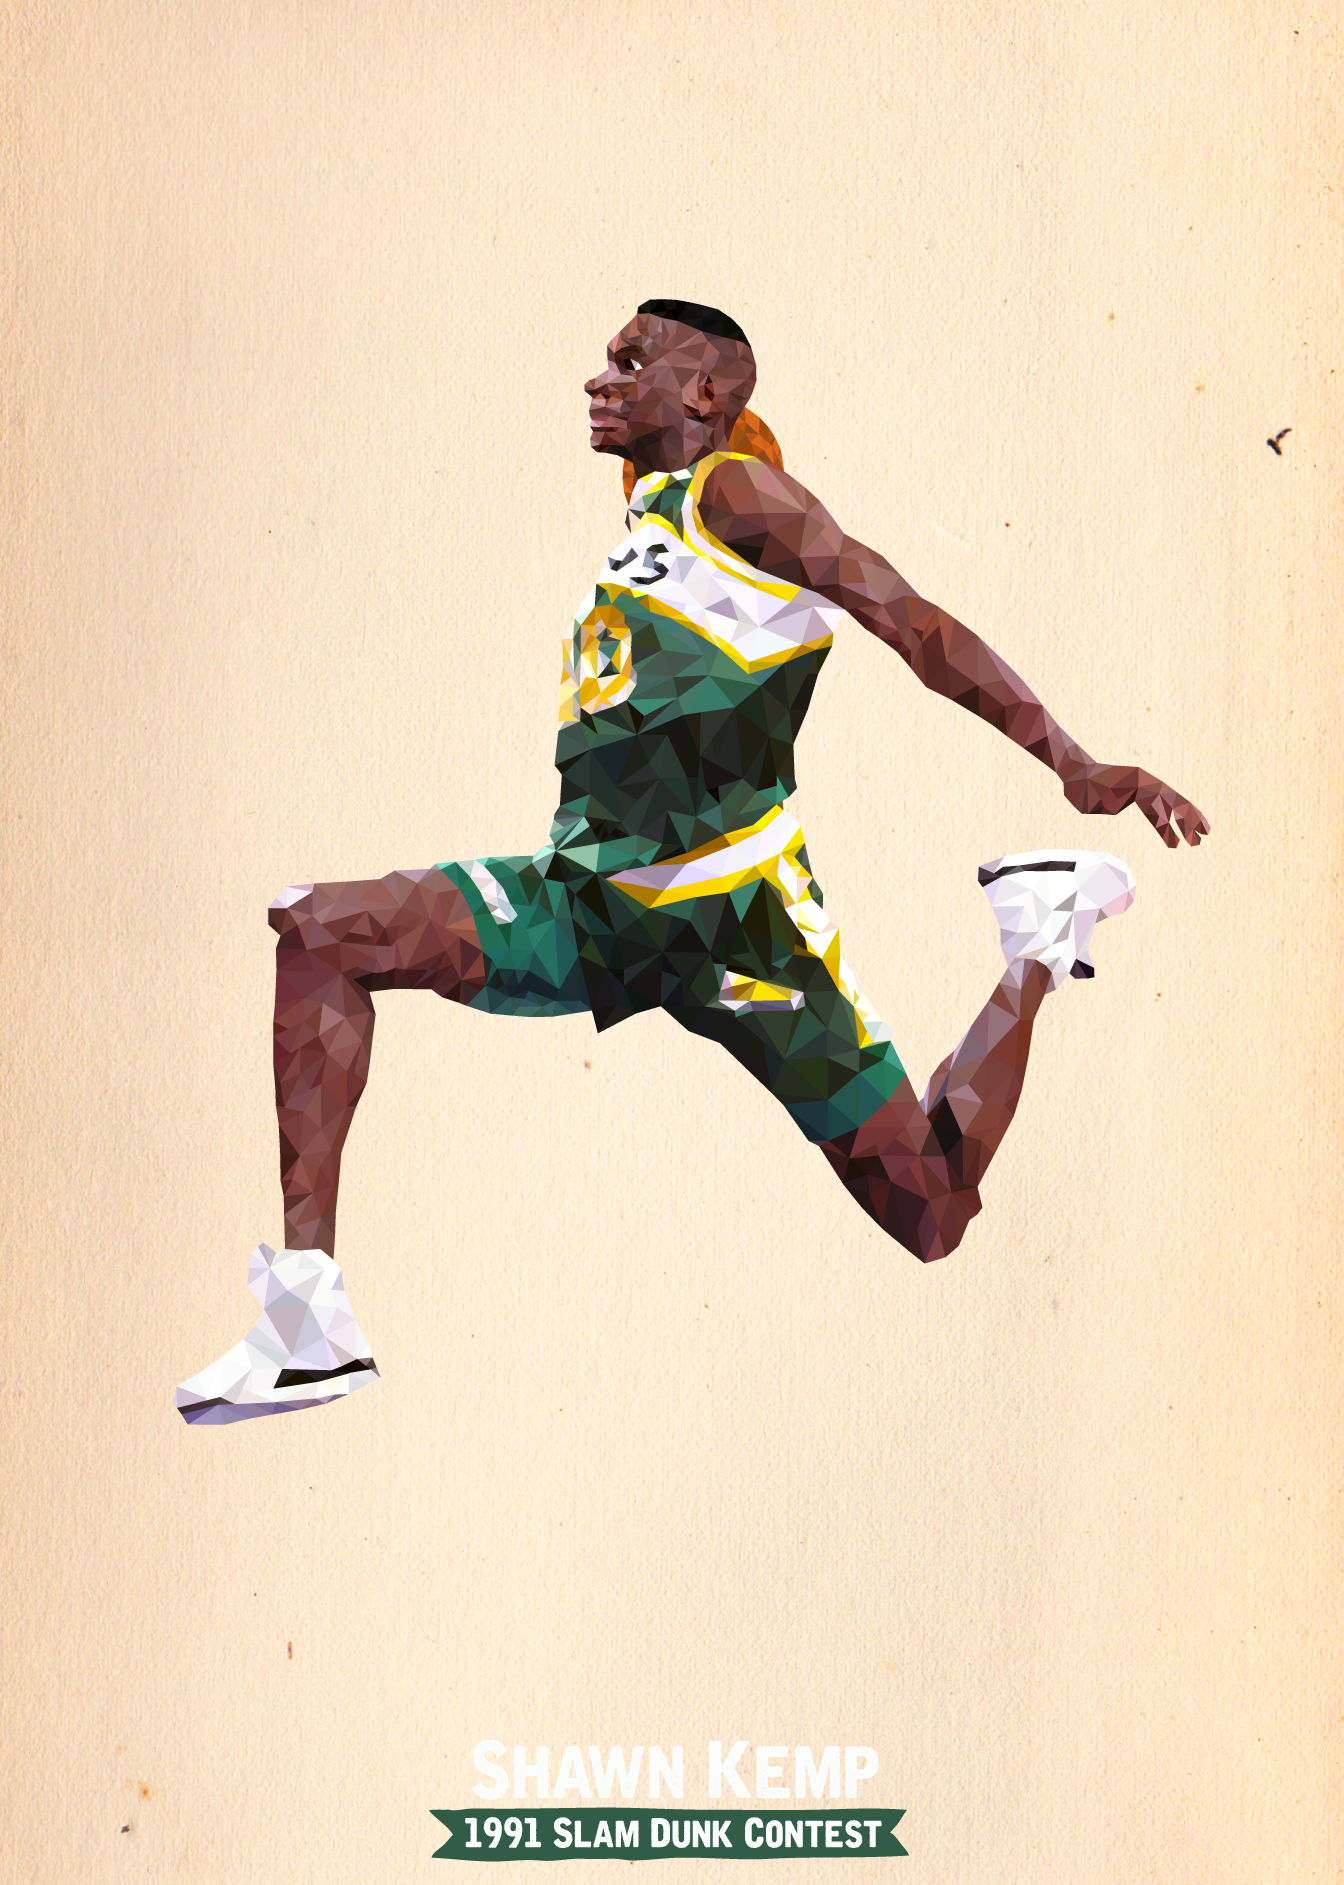 Shawn Kemp 1991 Slam Dunk Contest On Behance